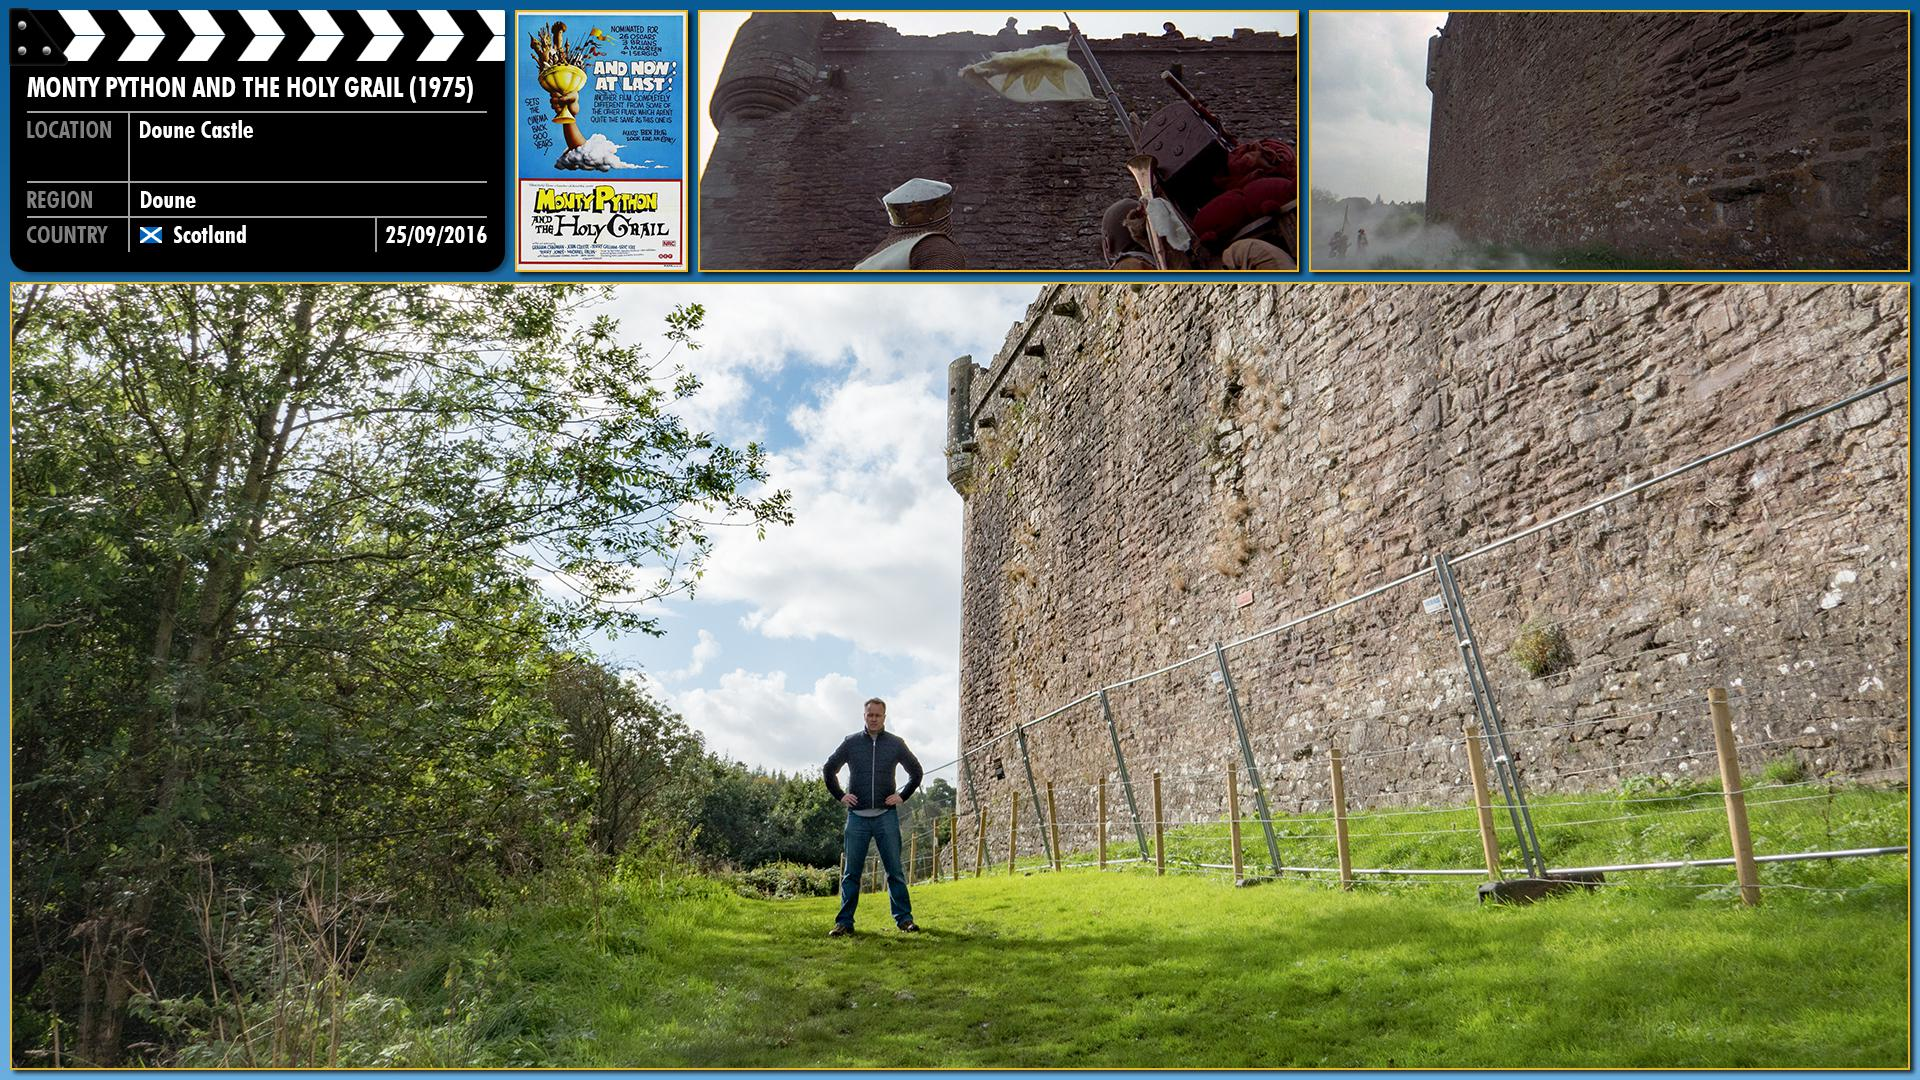 Filming location photo for Monty Python and the Holy Grail (1975) 4 of 7